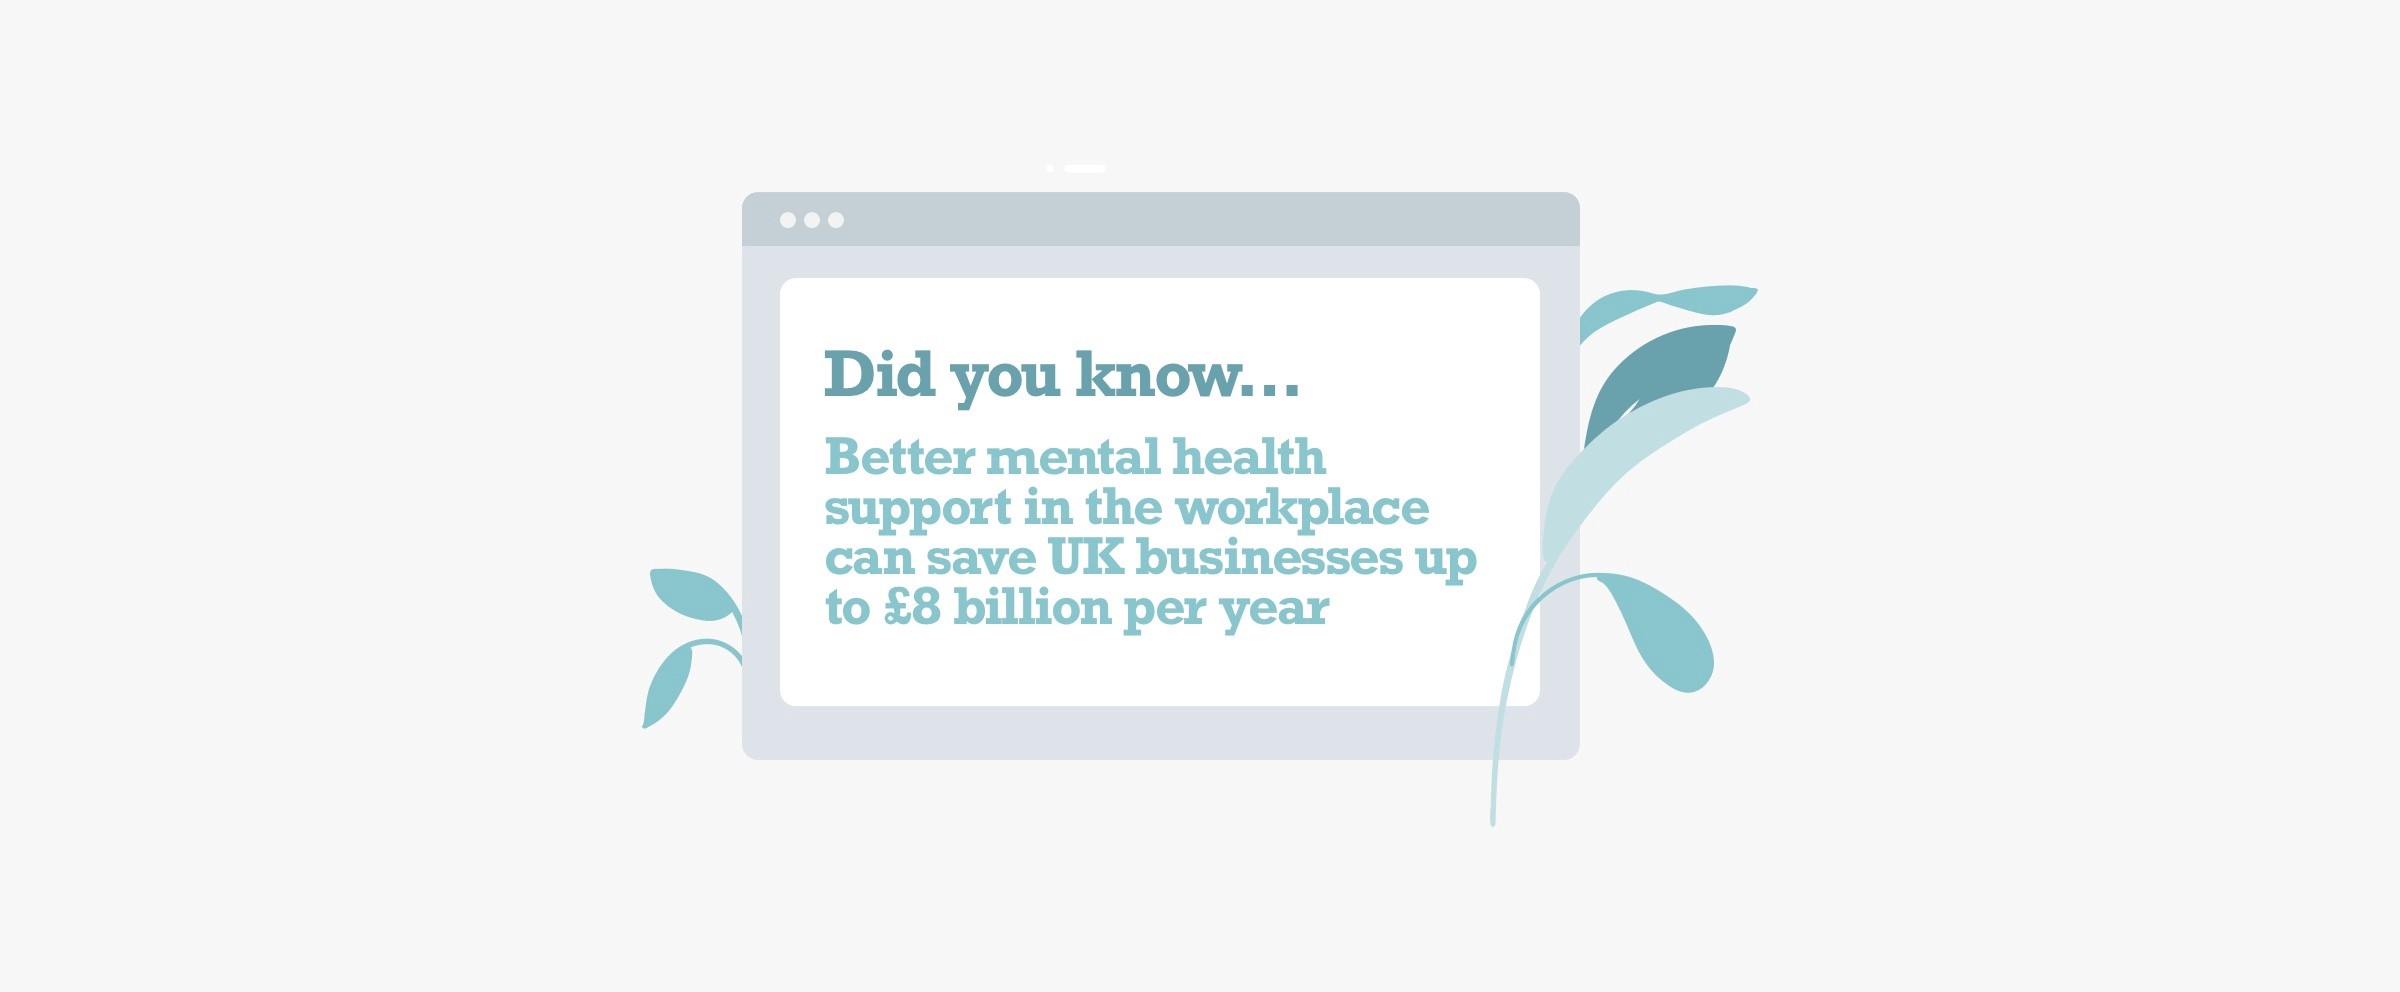 Better mental health support in the workplace can save UK businesses up to £8 billion per year